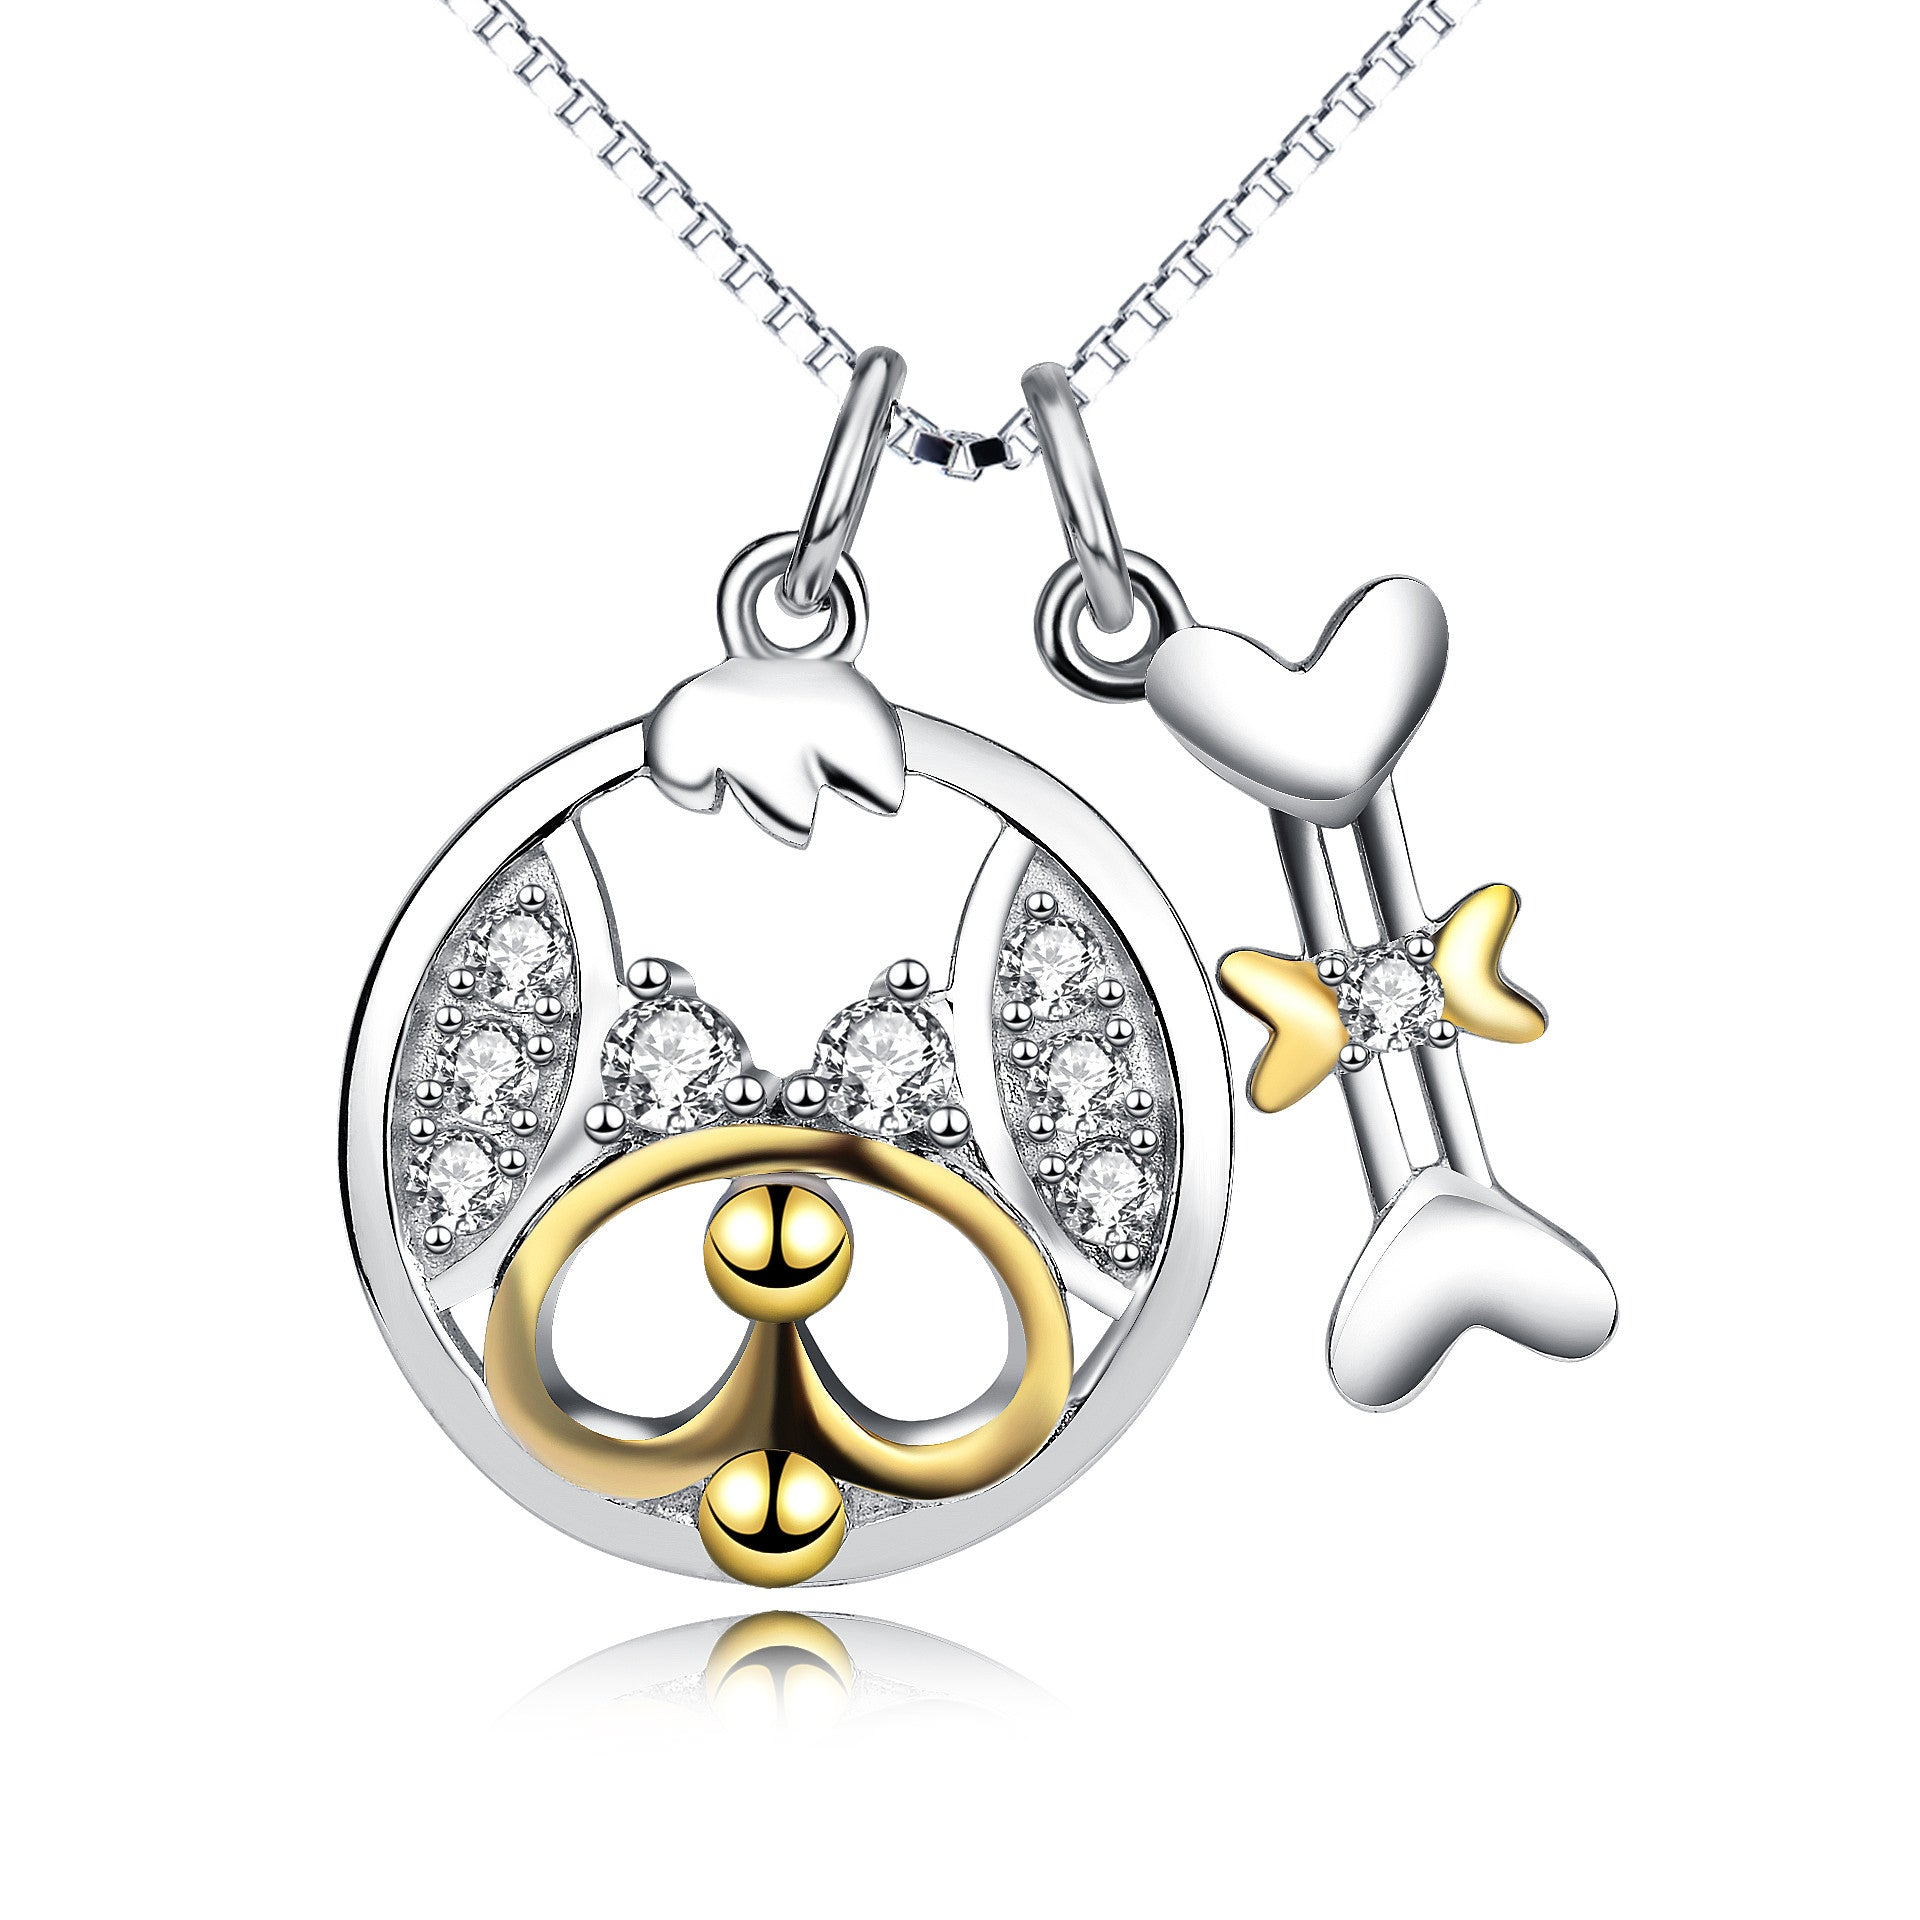 Dog pendant cute fun necklace female micro-insert Cross-border hot products 925 sterling silver jewelry source manufacturers on behalf of the wholesale - Rocky Mt. Discount Outlet